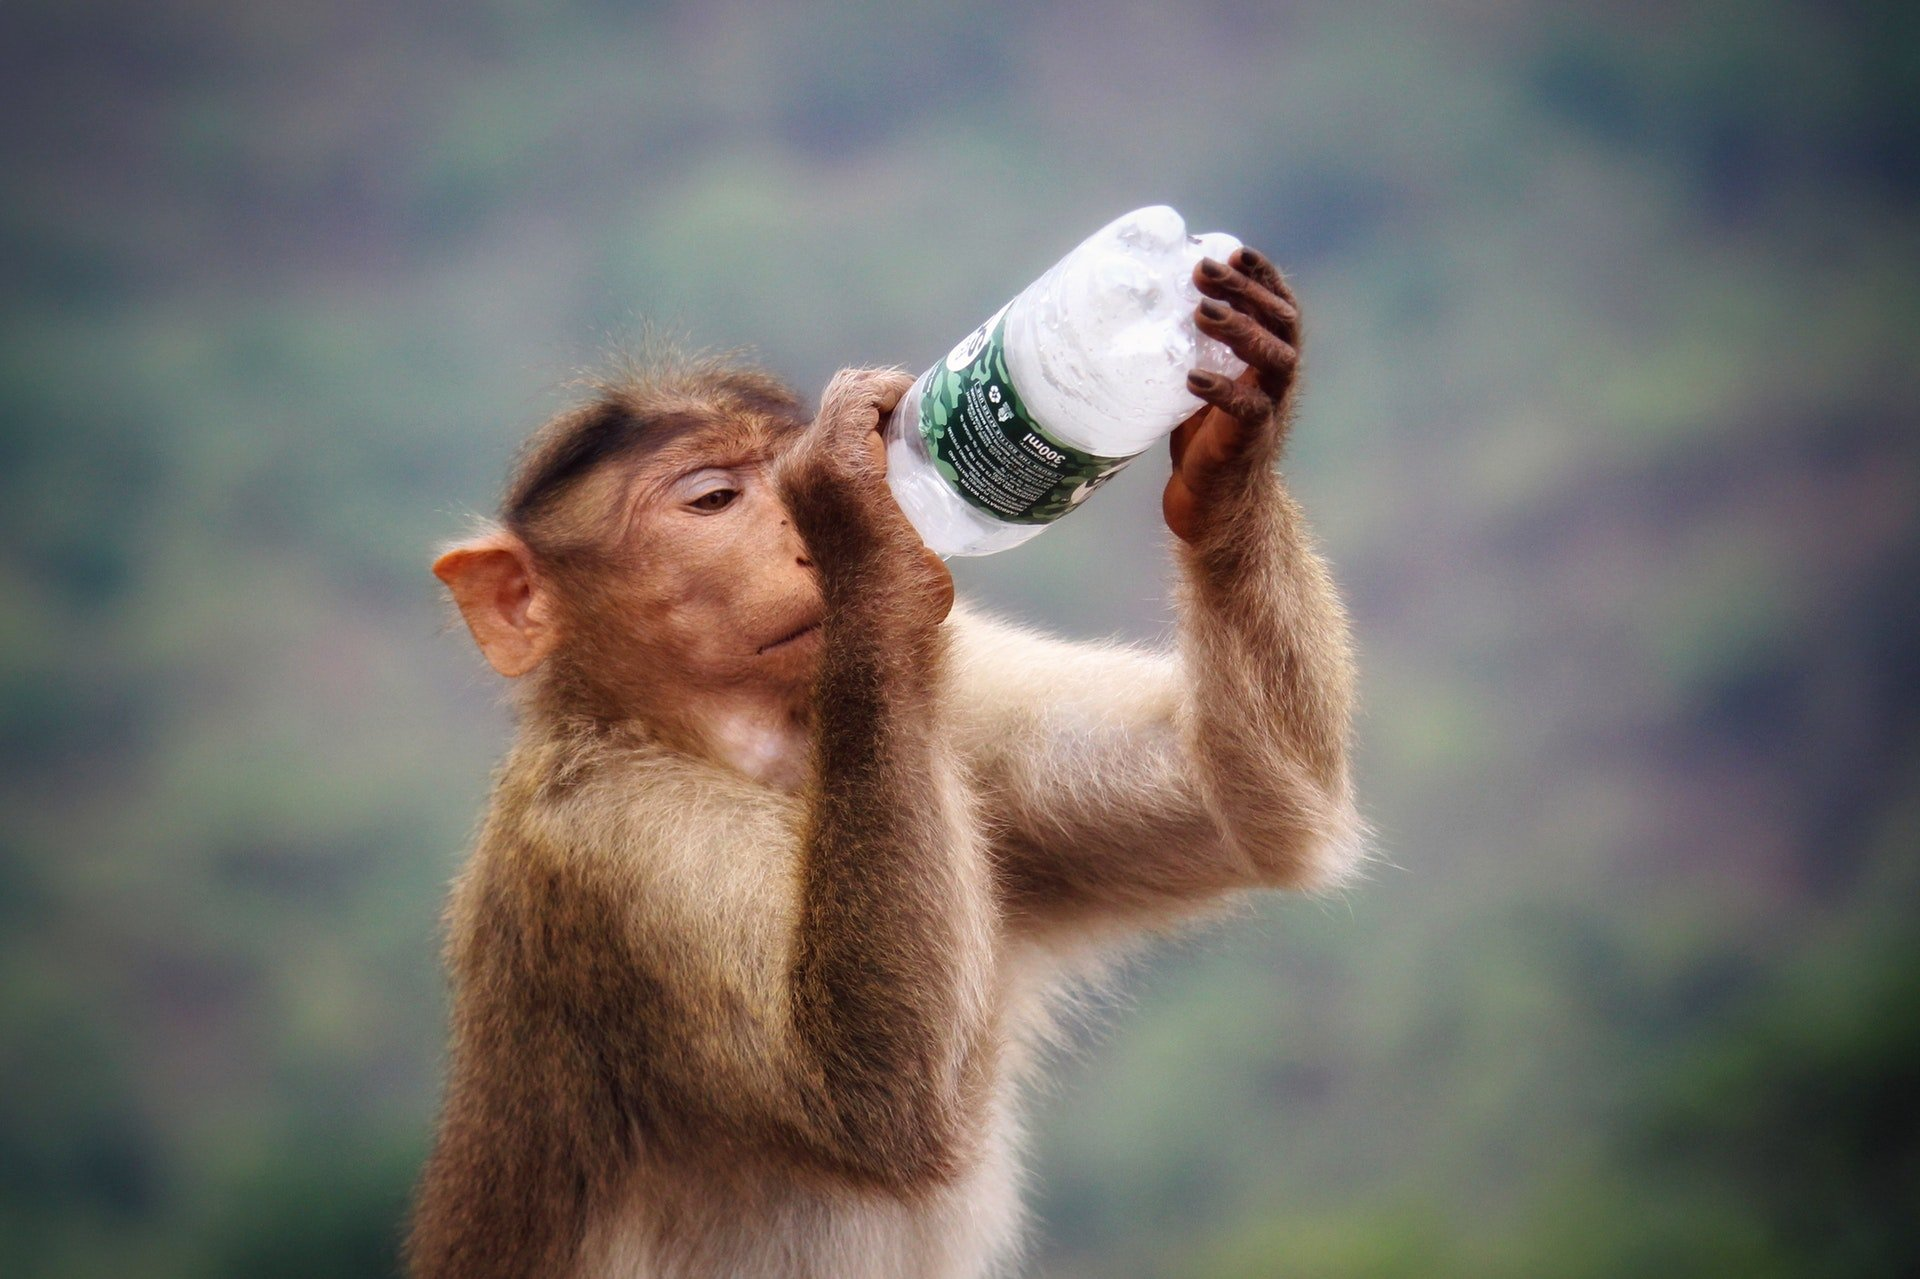 monkey primate holding clear and black labeled bottle water 塑膠瓶裝水置於高溫車廂會溶出塑化劑危害健康?